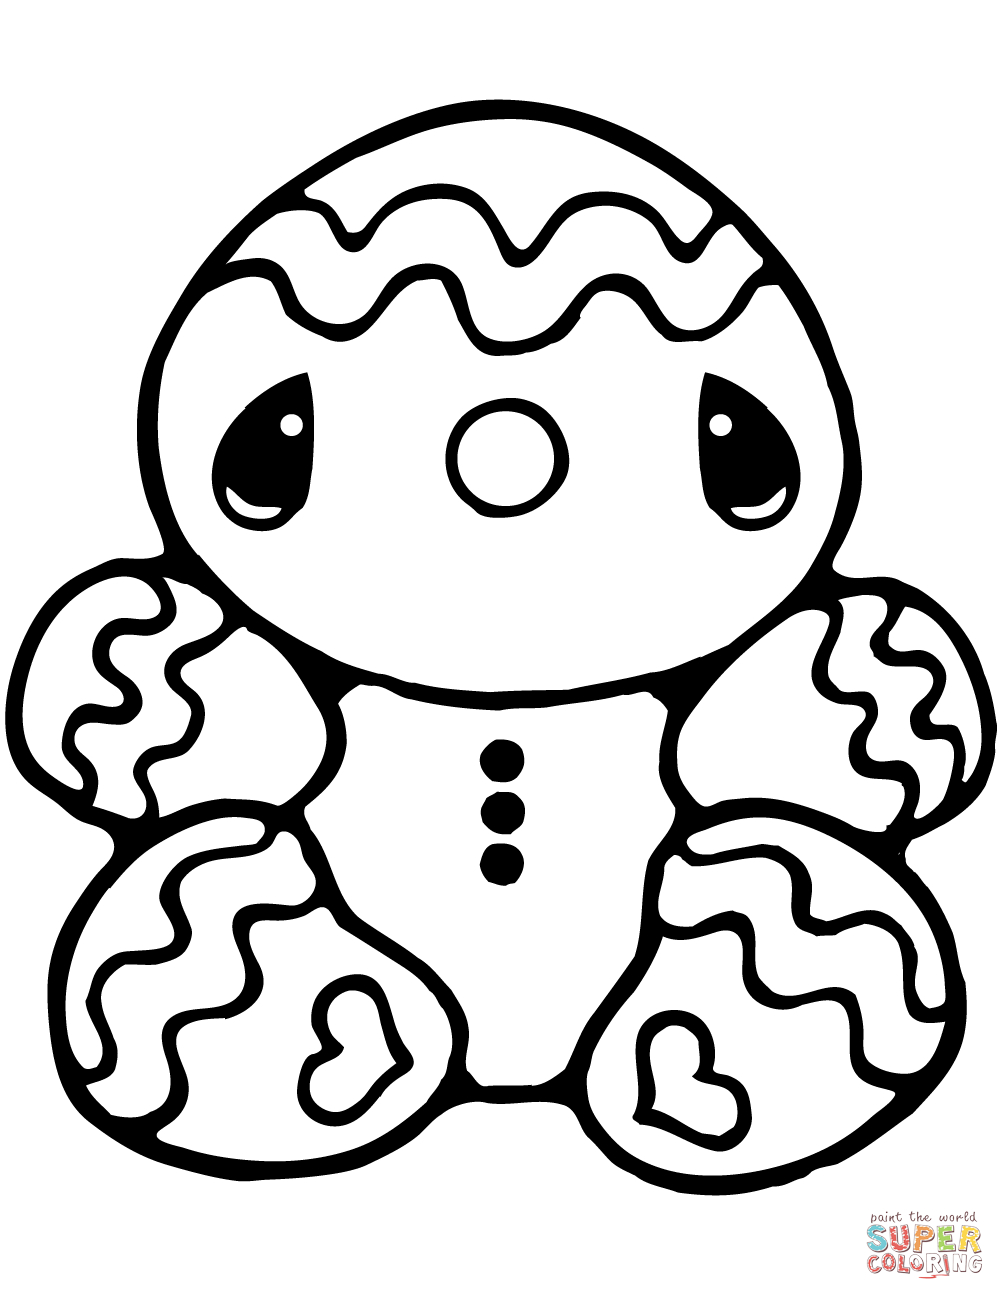 25+ Creative Picture of Gingerbread Coloring Pages